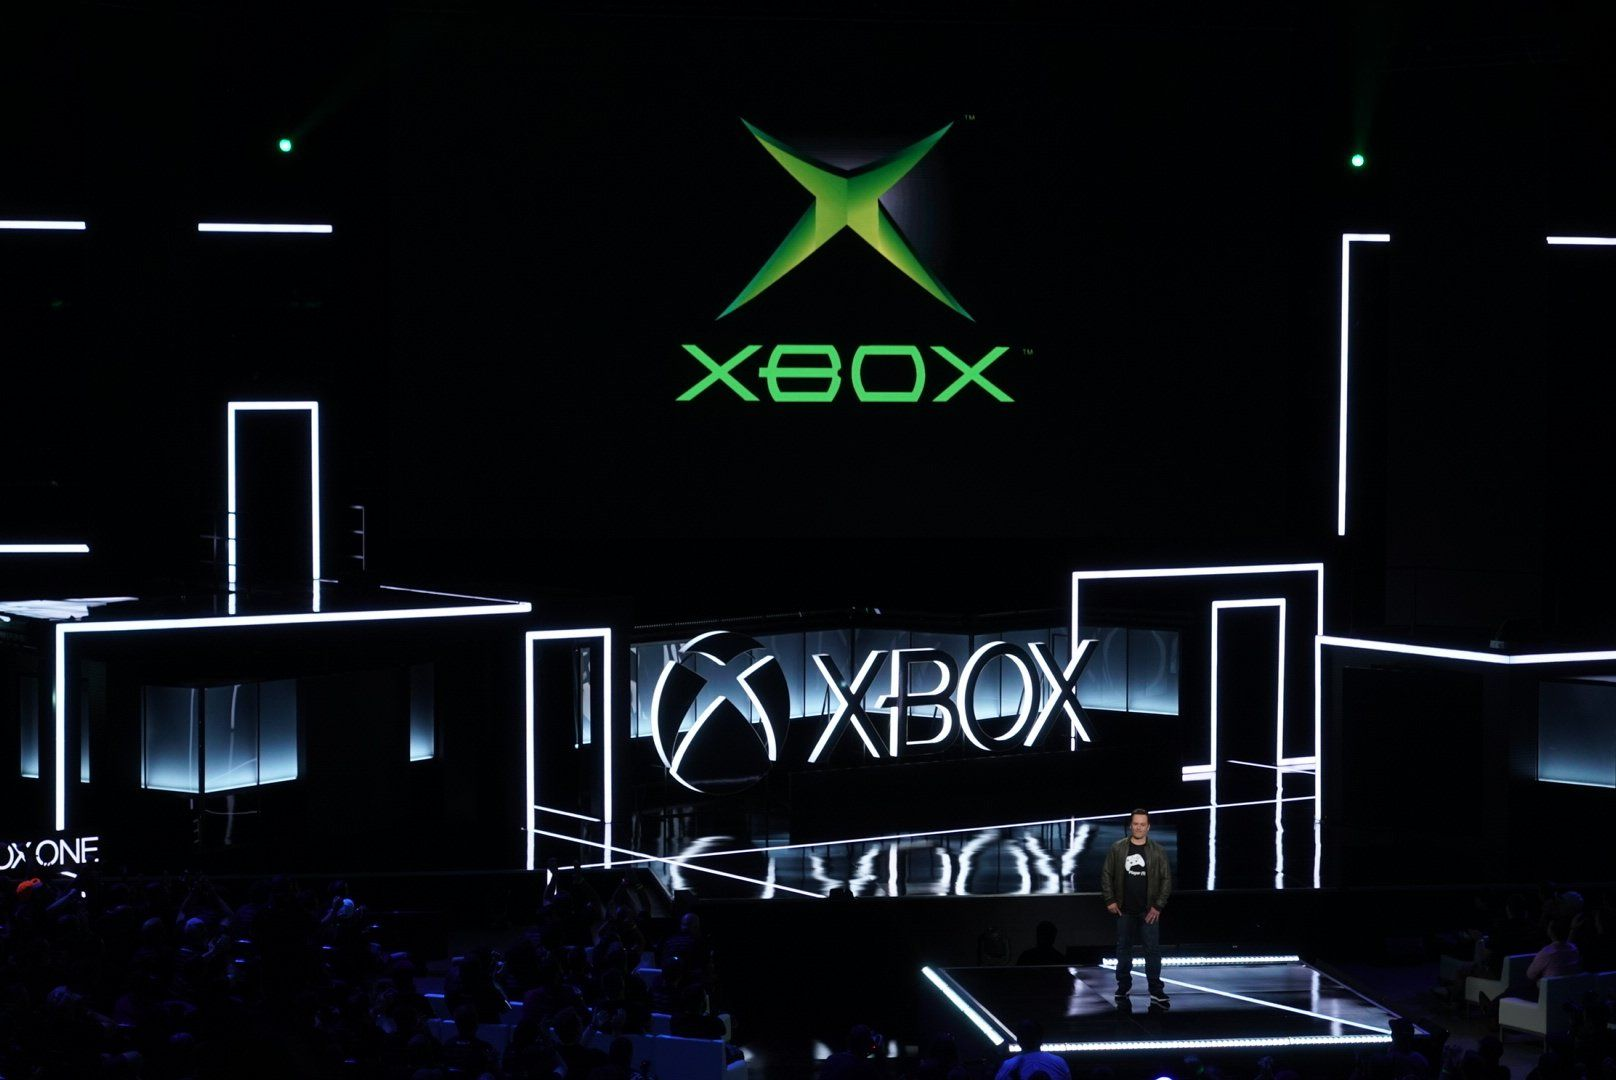 List of original Xbox games that are backward compatible on Xbox One